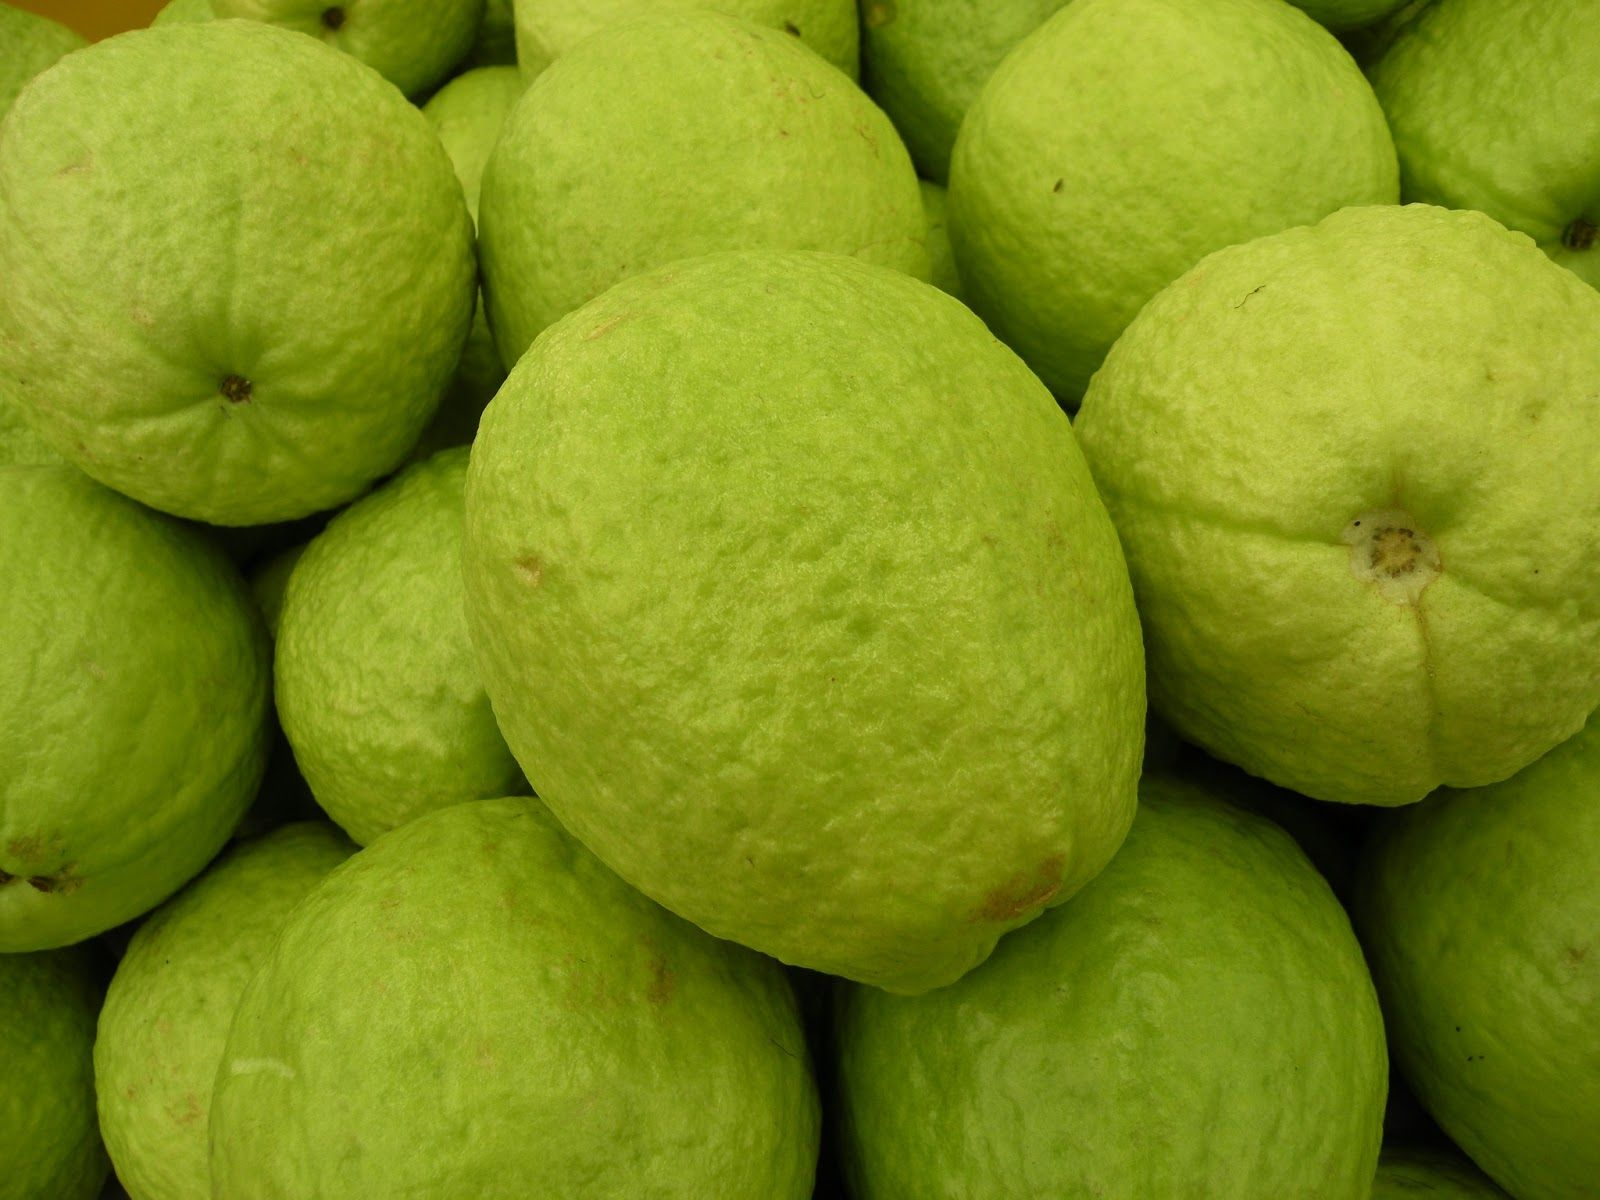 Guava Pictures Download Guava Wallpapers Images Guava Pictures Guava Pictures